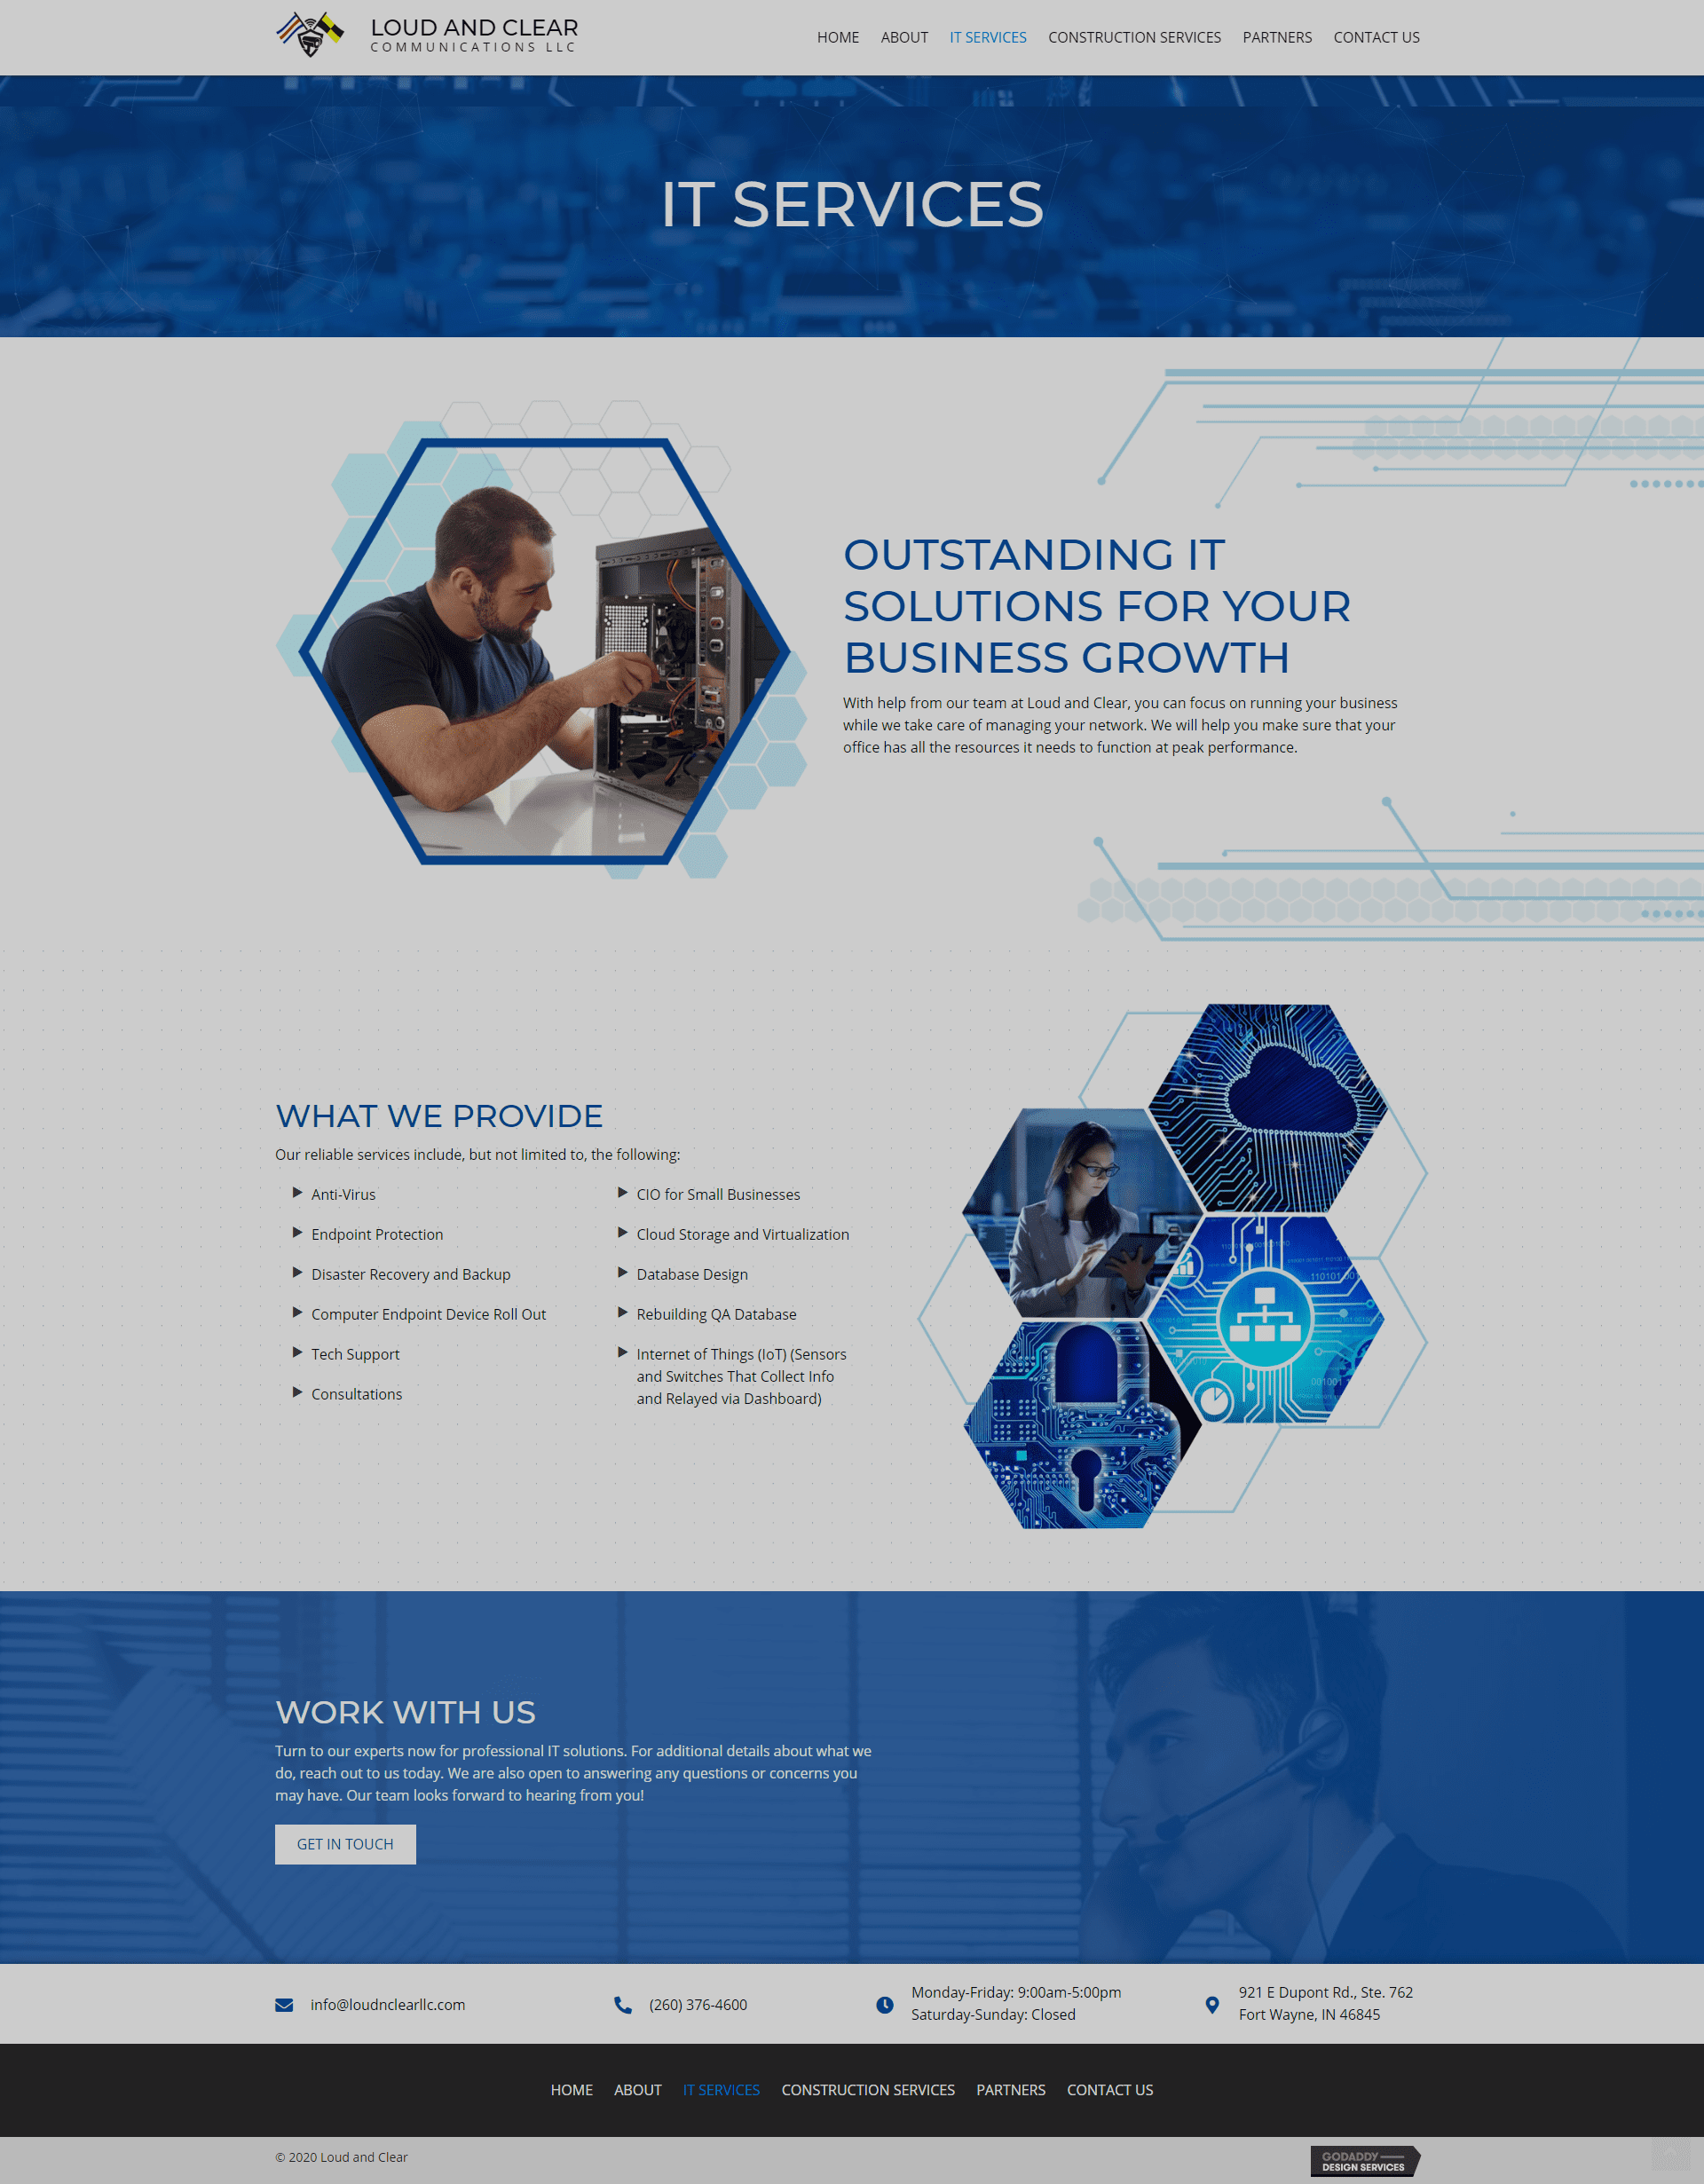 Loud and Clear LLC IT Services Page